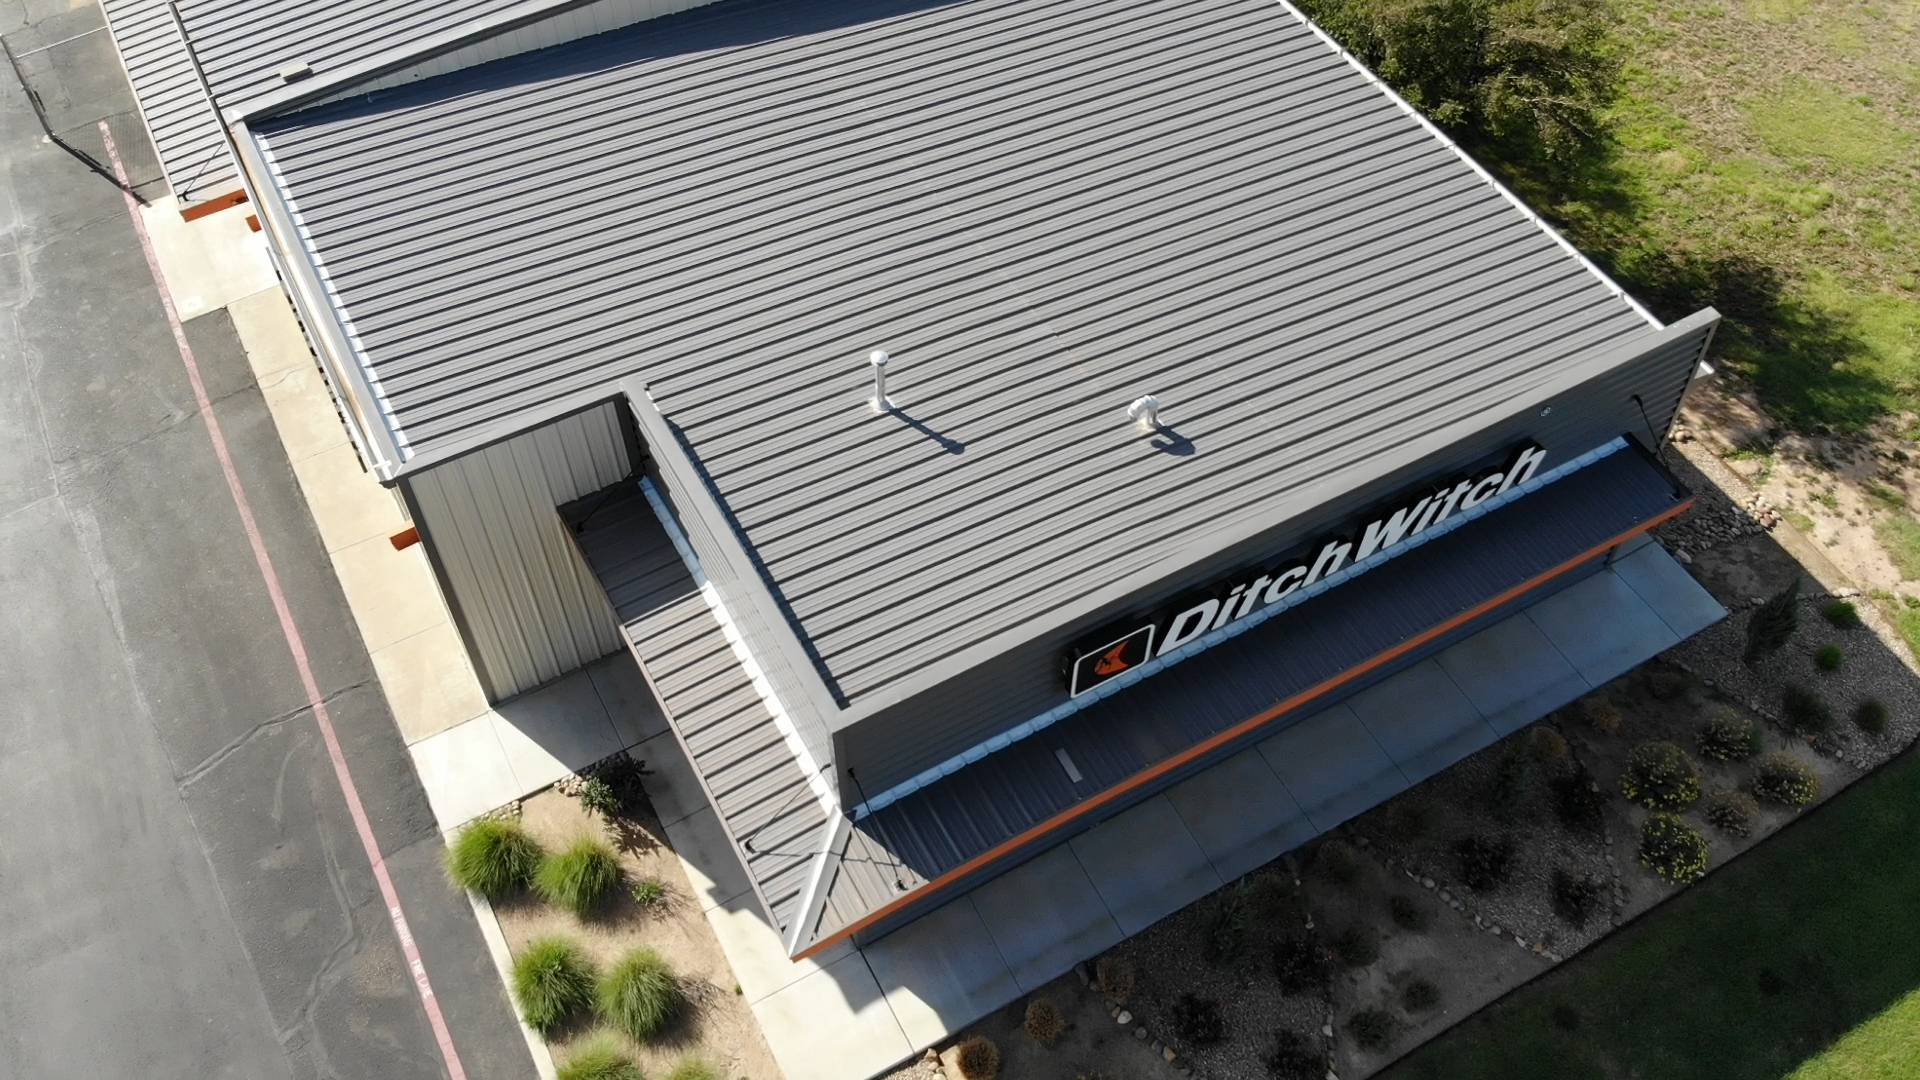 Ditch witch gray roof from drone angle with signage and landscaping